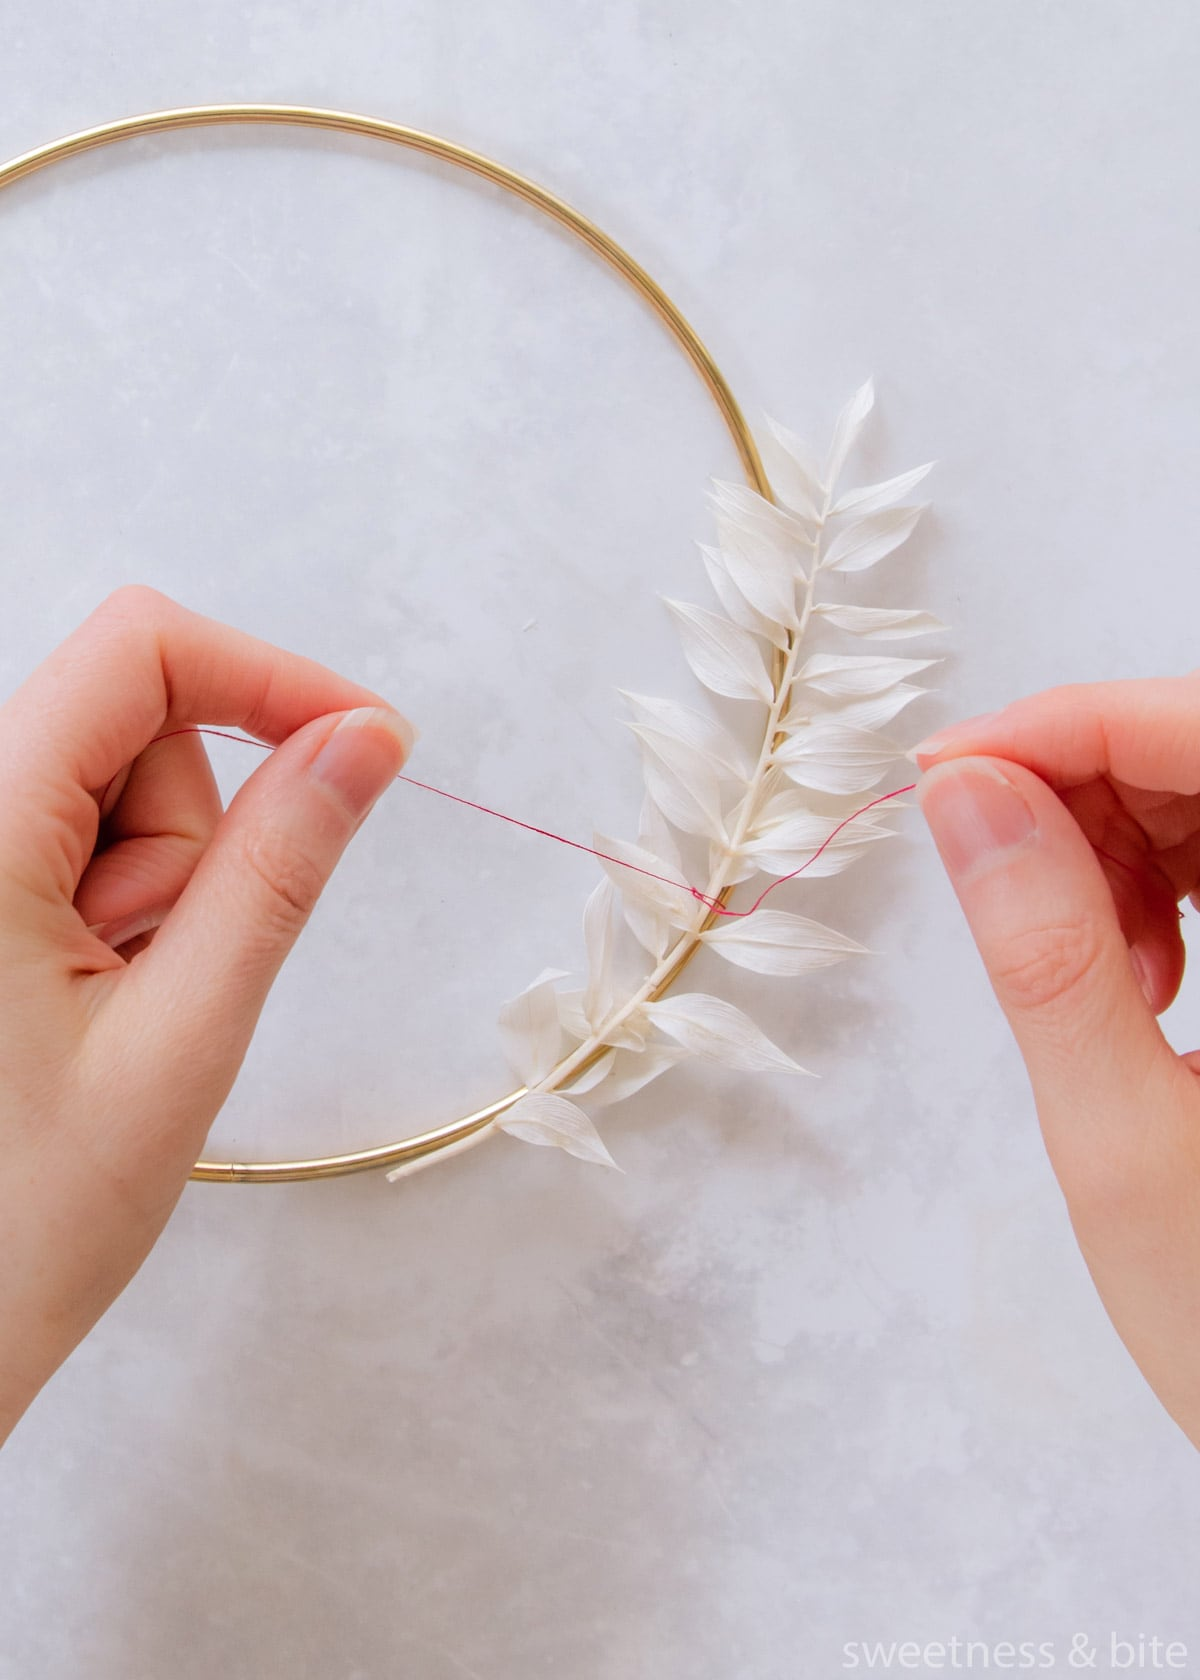 A stem of white ruscus leaved being tied to the hoop with pink thread.